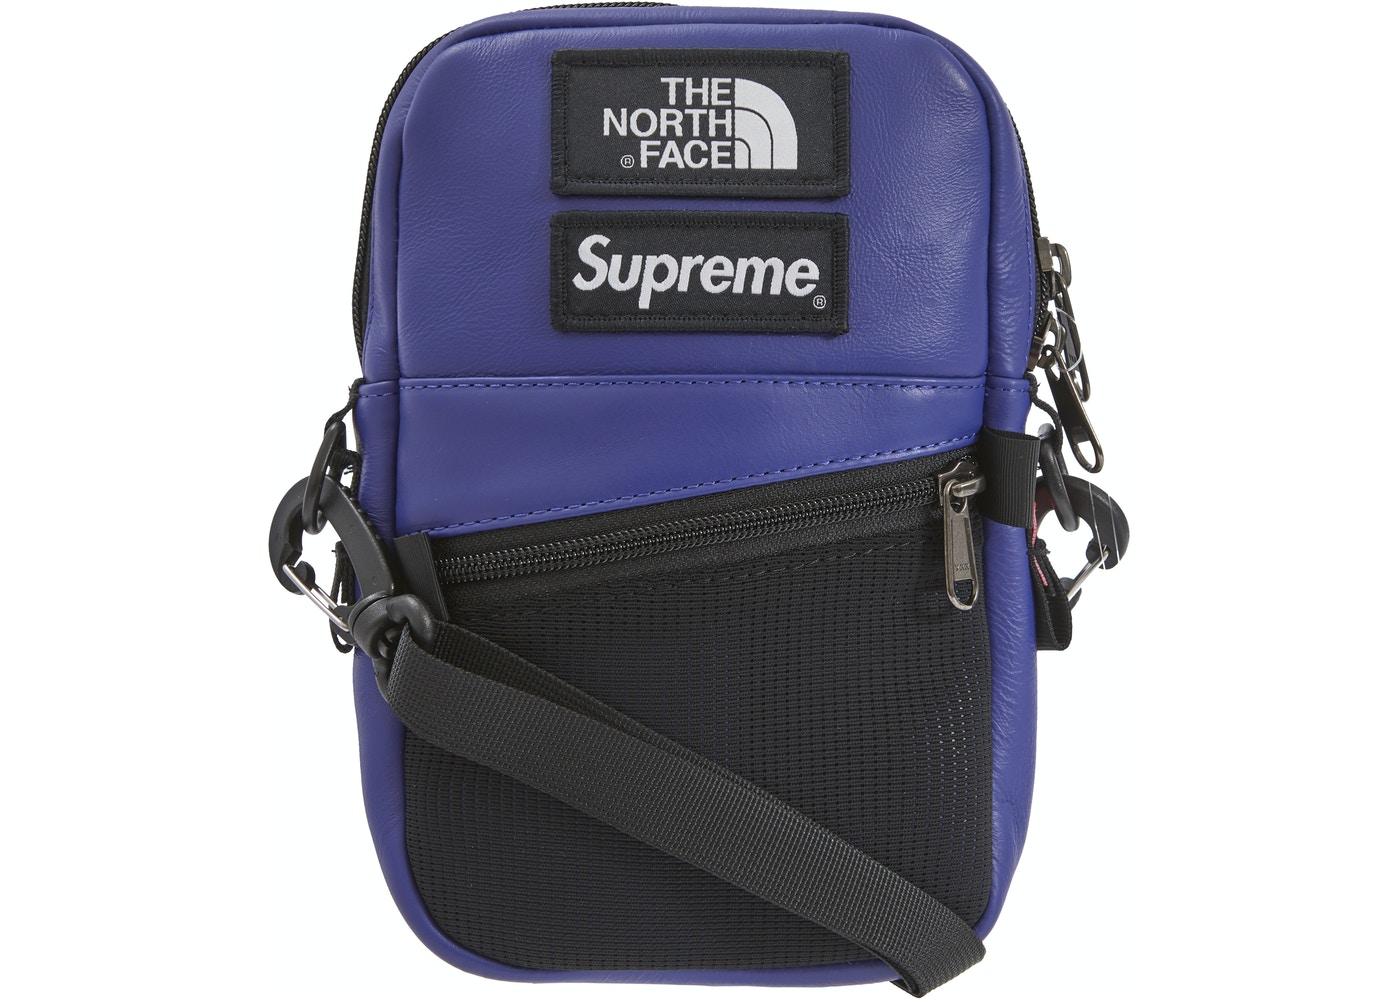 39682a202 Supreme The North Face Leather Shoulder Bag Royal